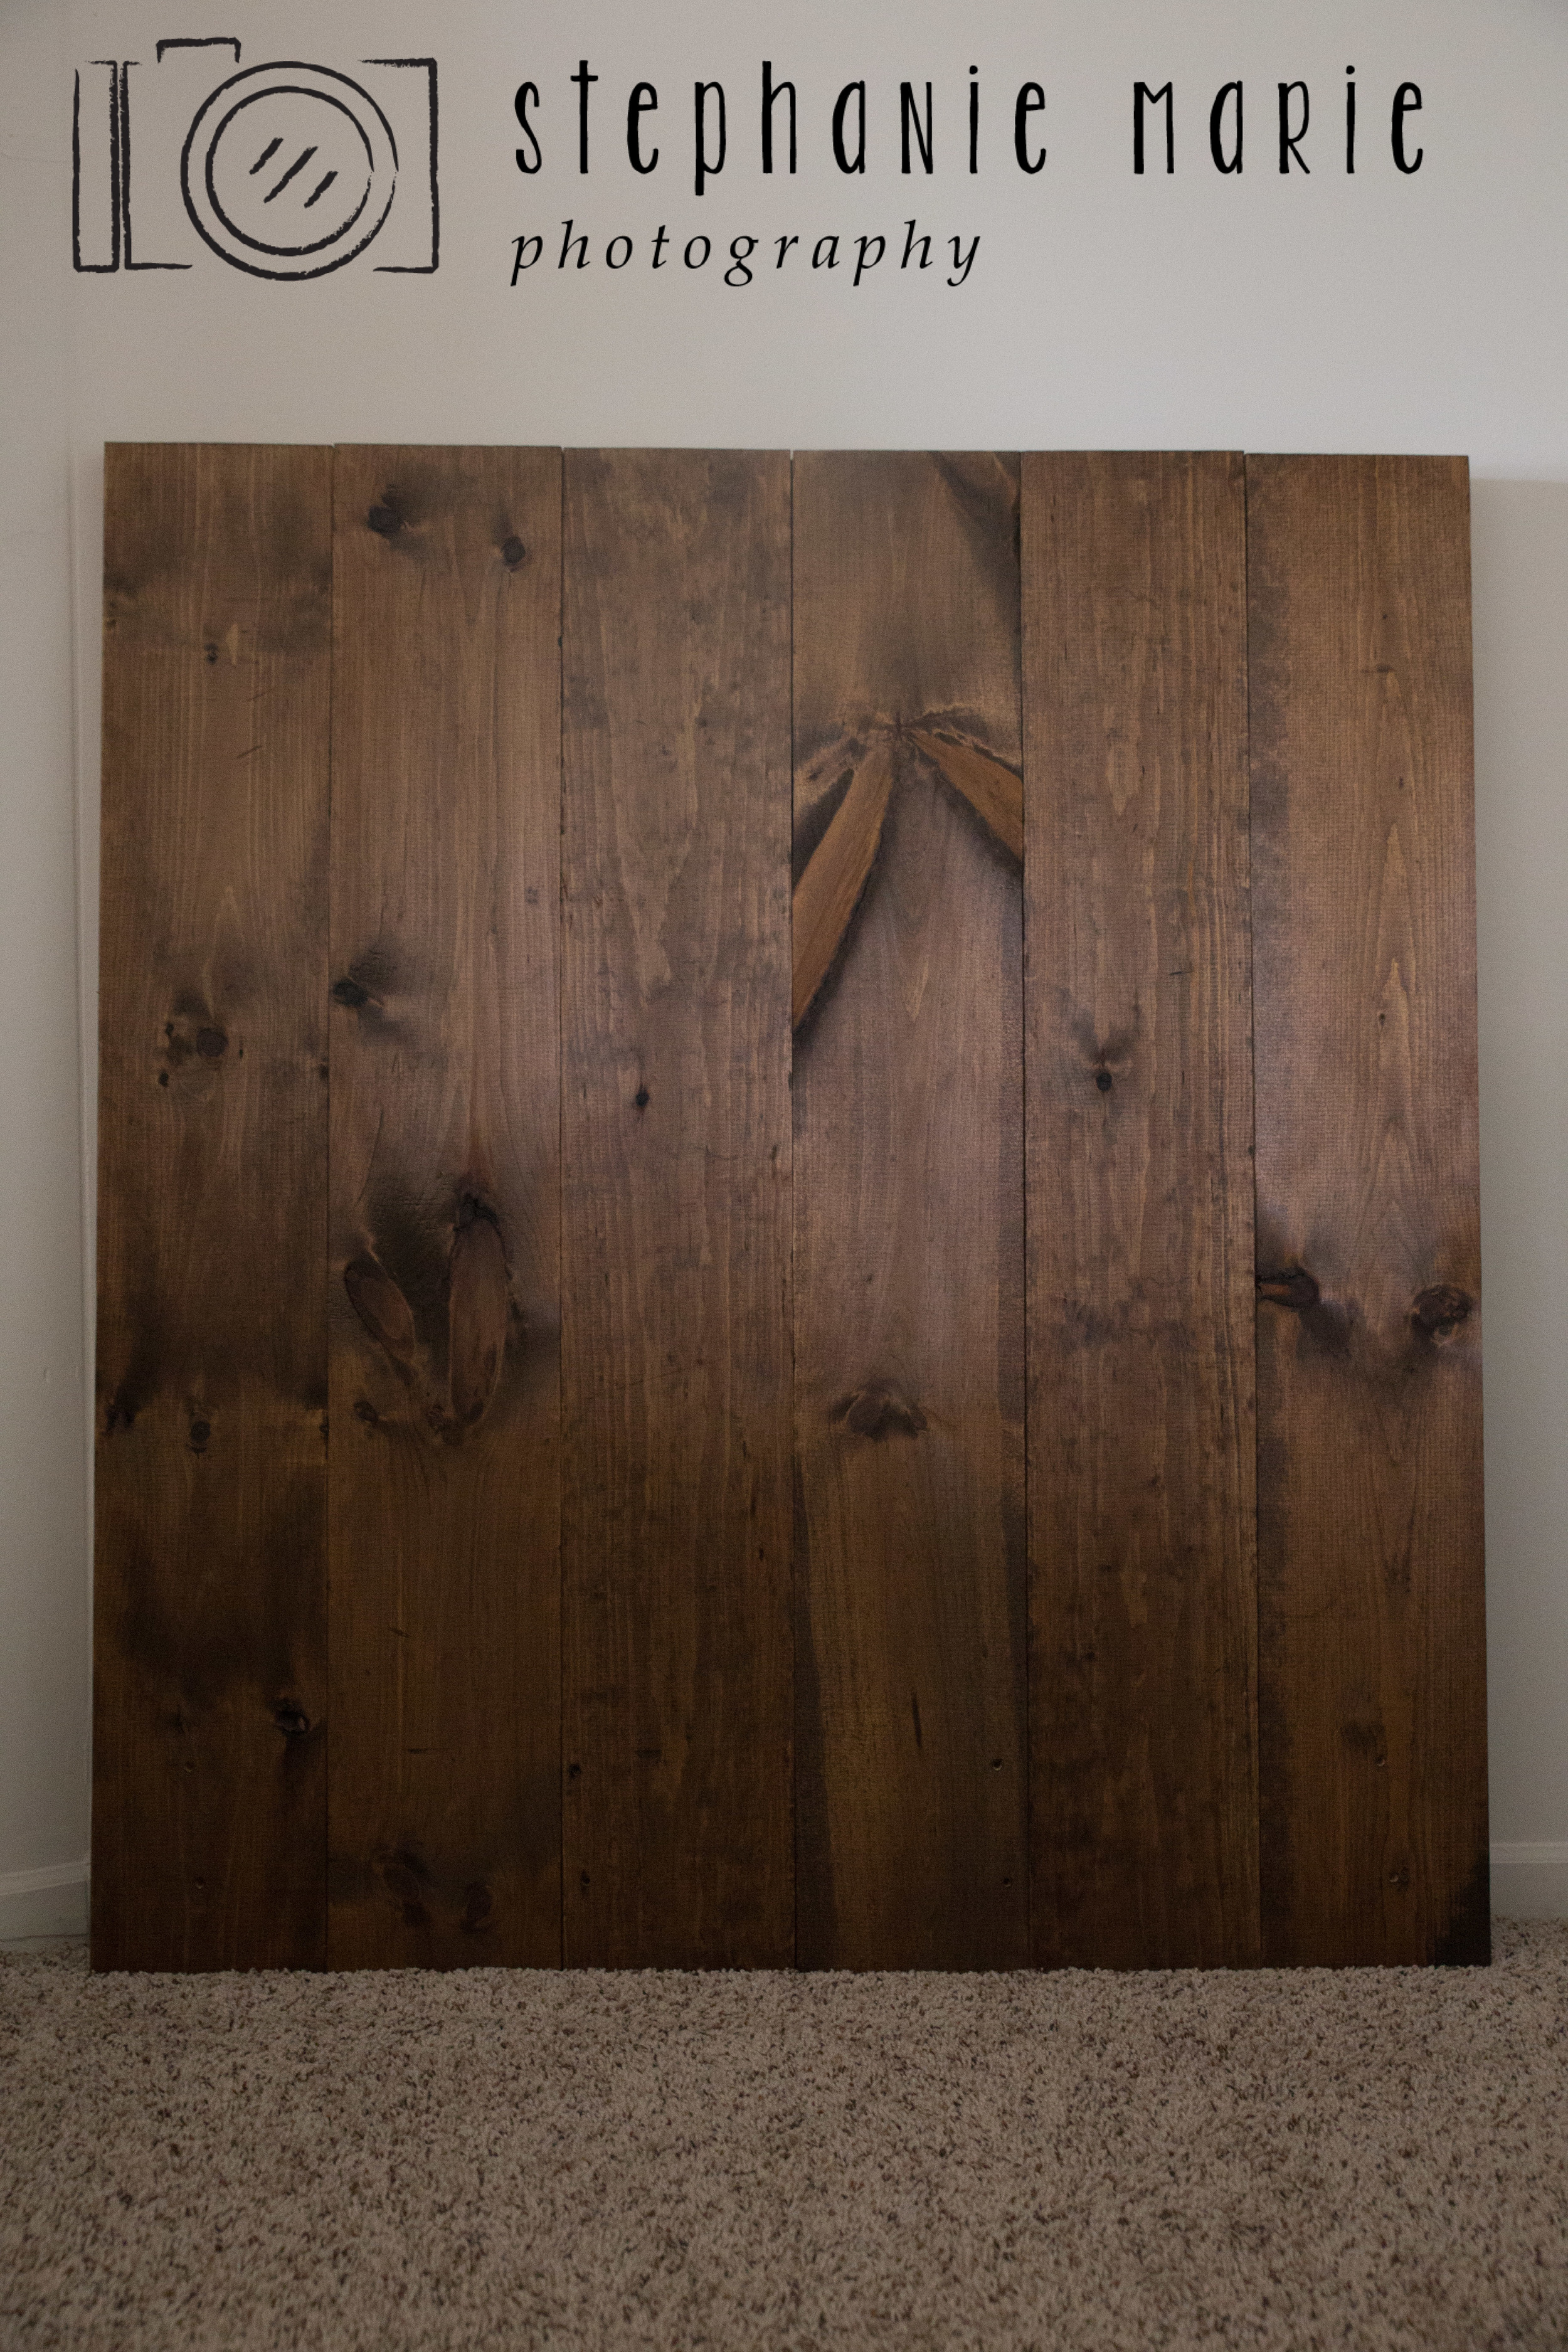 Tutorial How to DIY Photography Faux Wood Floor & Wall Backdrop Prop For Photographers